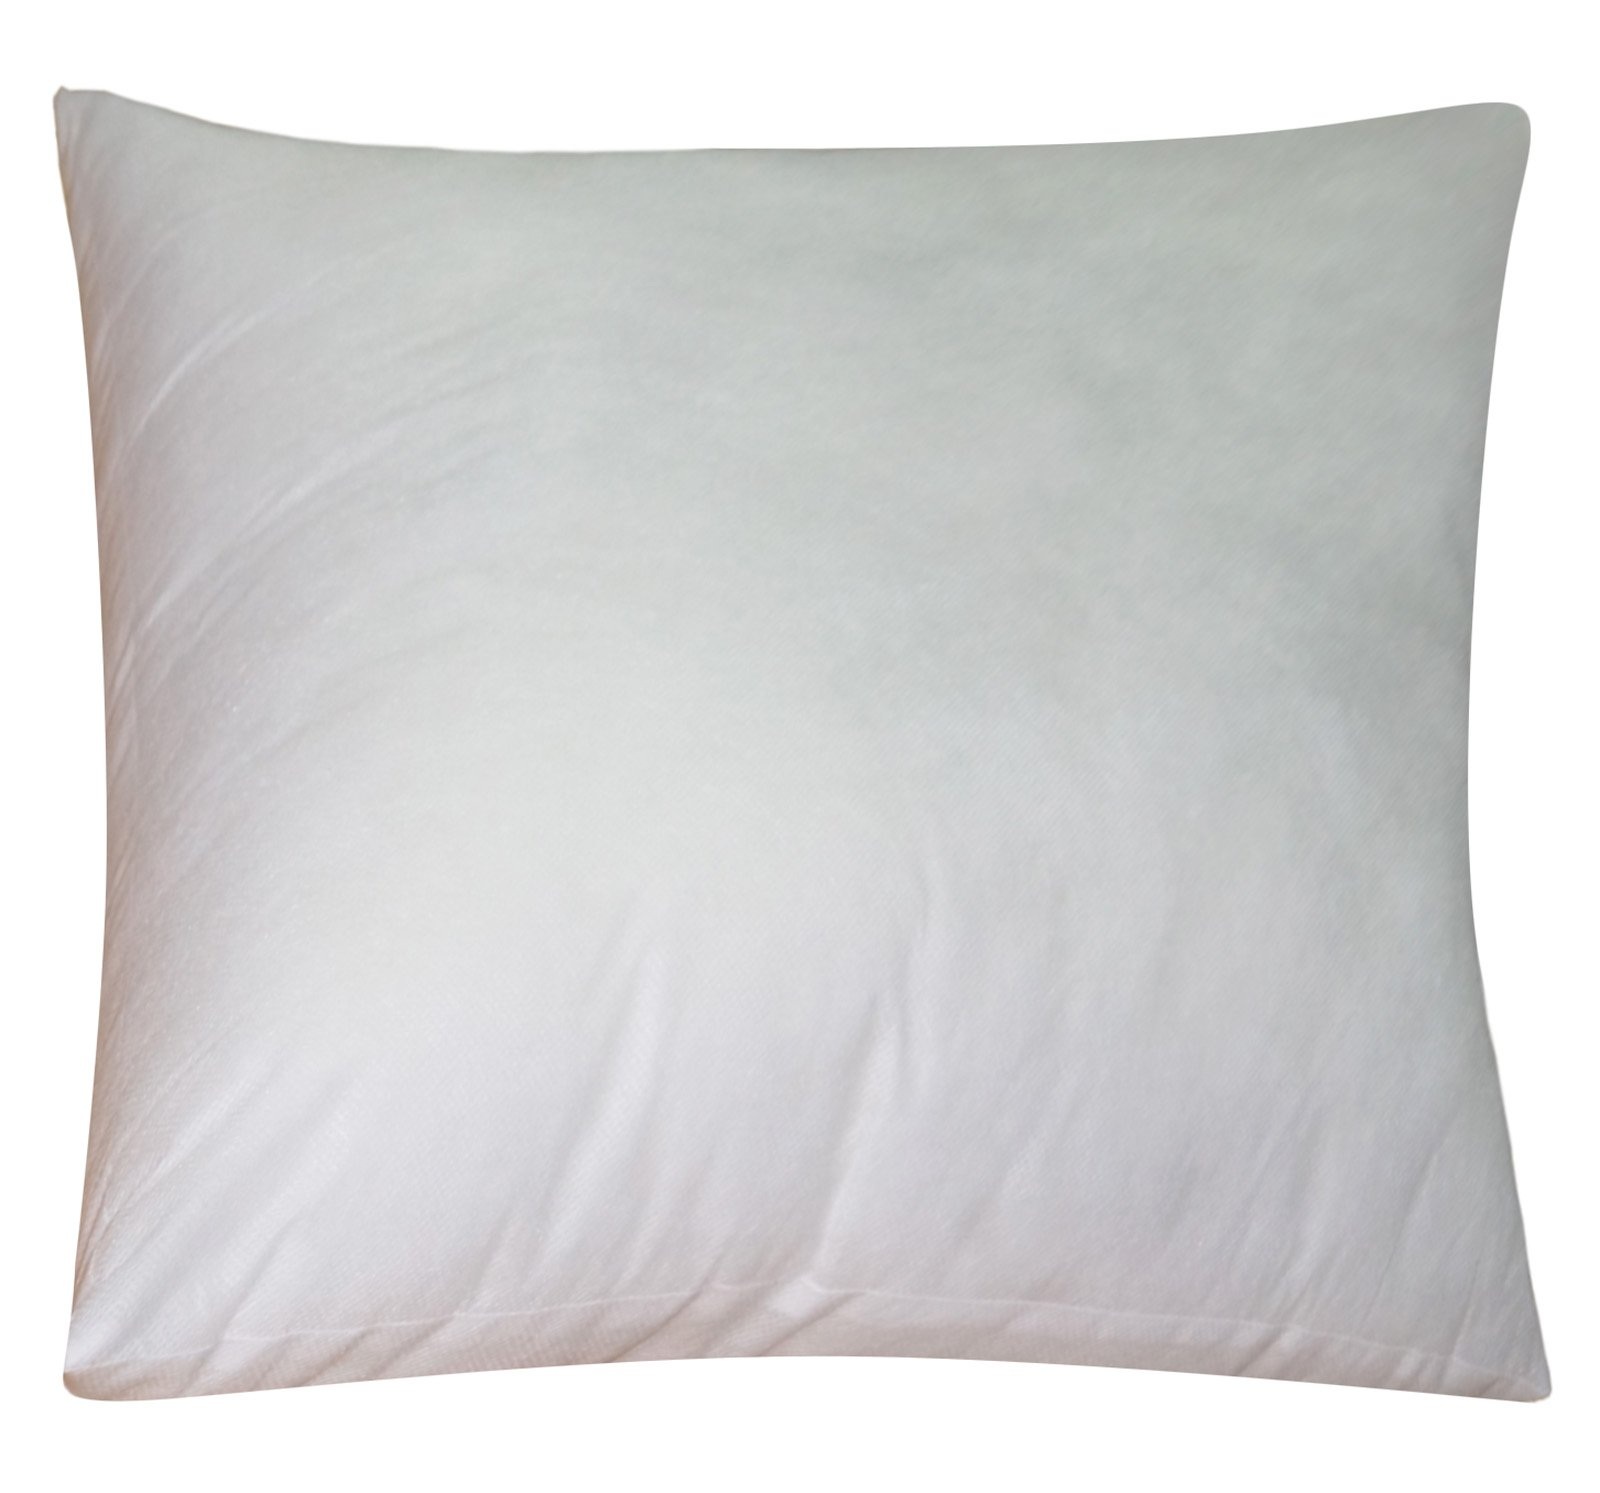 Lushomes Filler Square Pillow Insert Cushion Cover 24 x 24 Inches - Packs Available by LUSHOMES